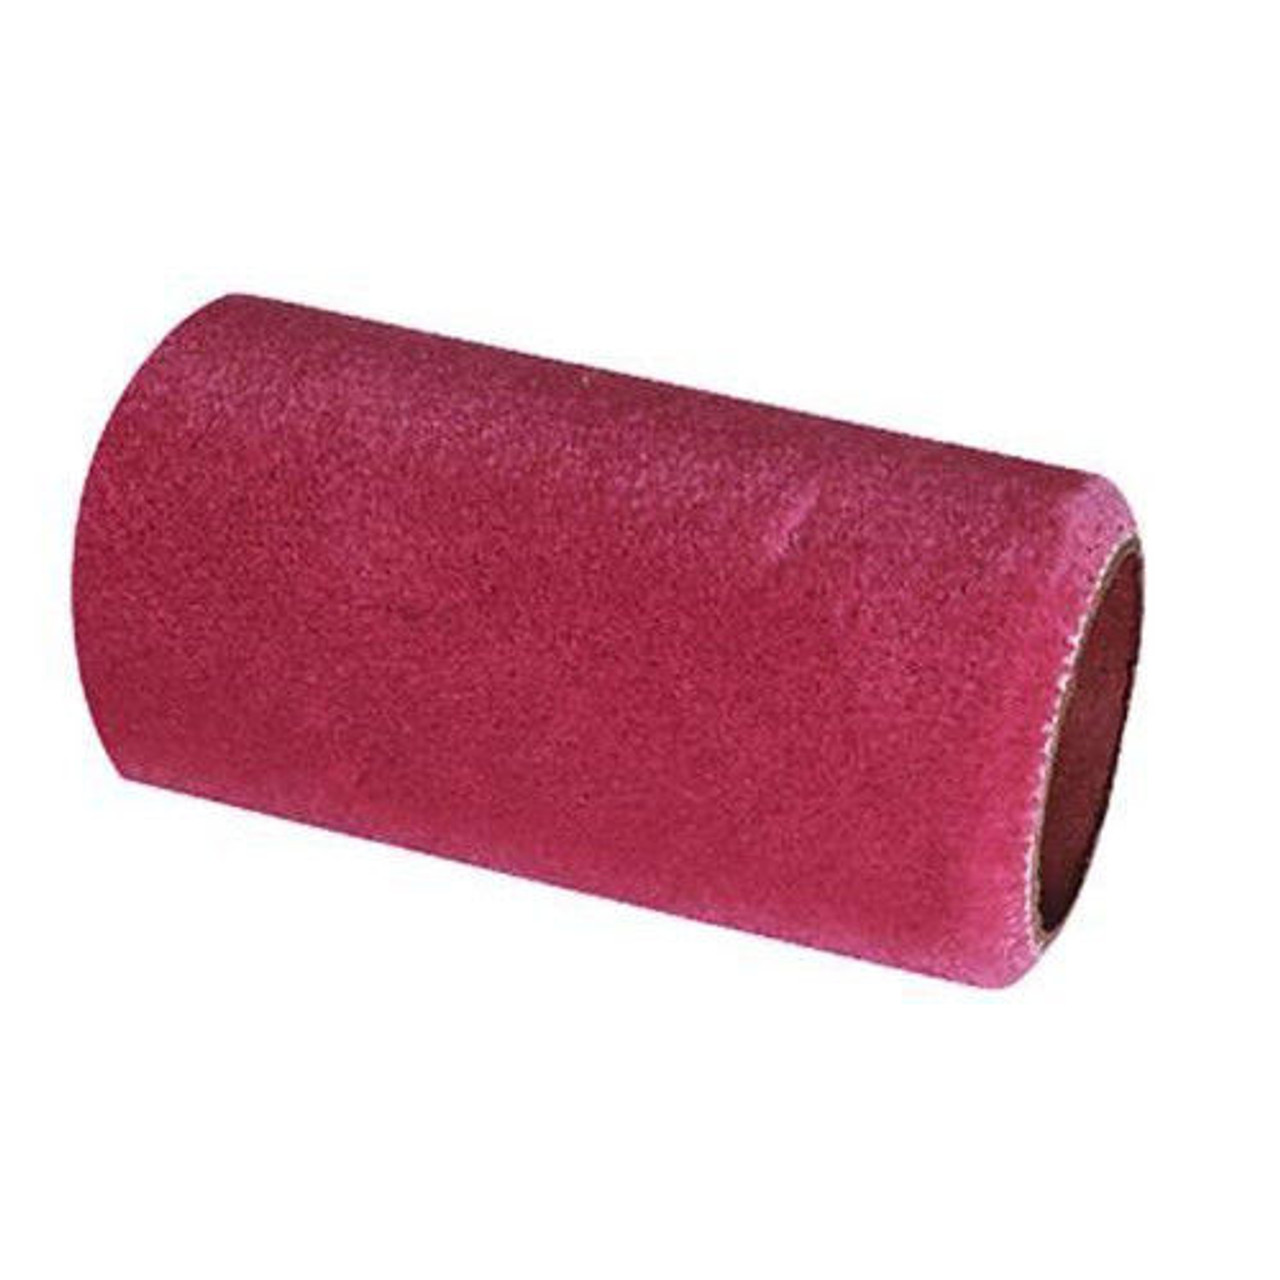 Seachoice 3 Inch Mohair Paint Roller - Best for Epoxies, Urethanes, Varnish and Adhesives